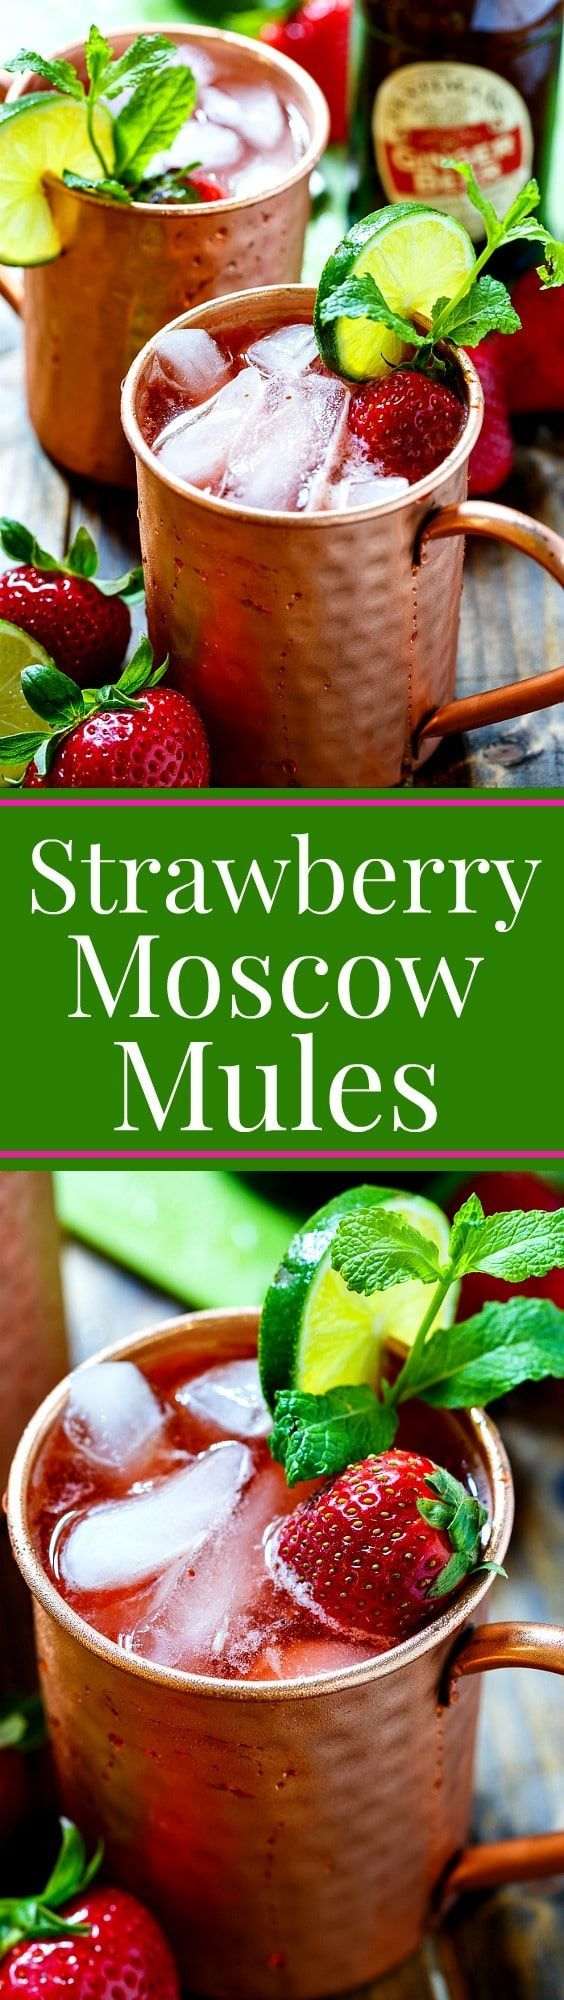 Strawberry Moscow Mule (strawberry alcohol drinks)